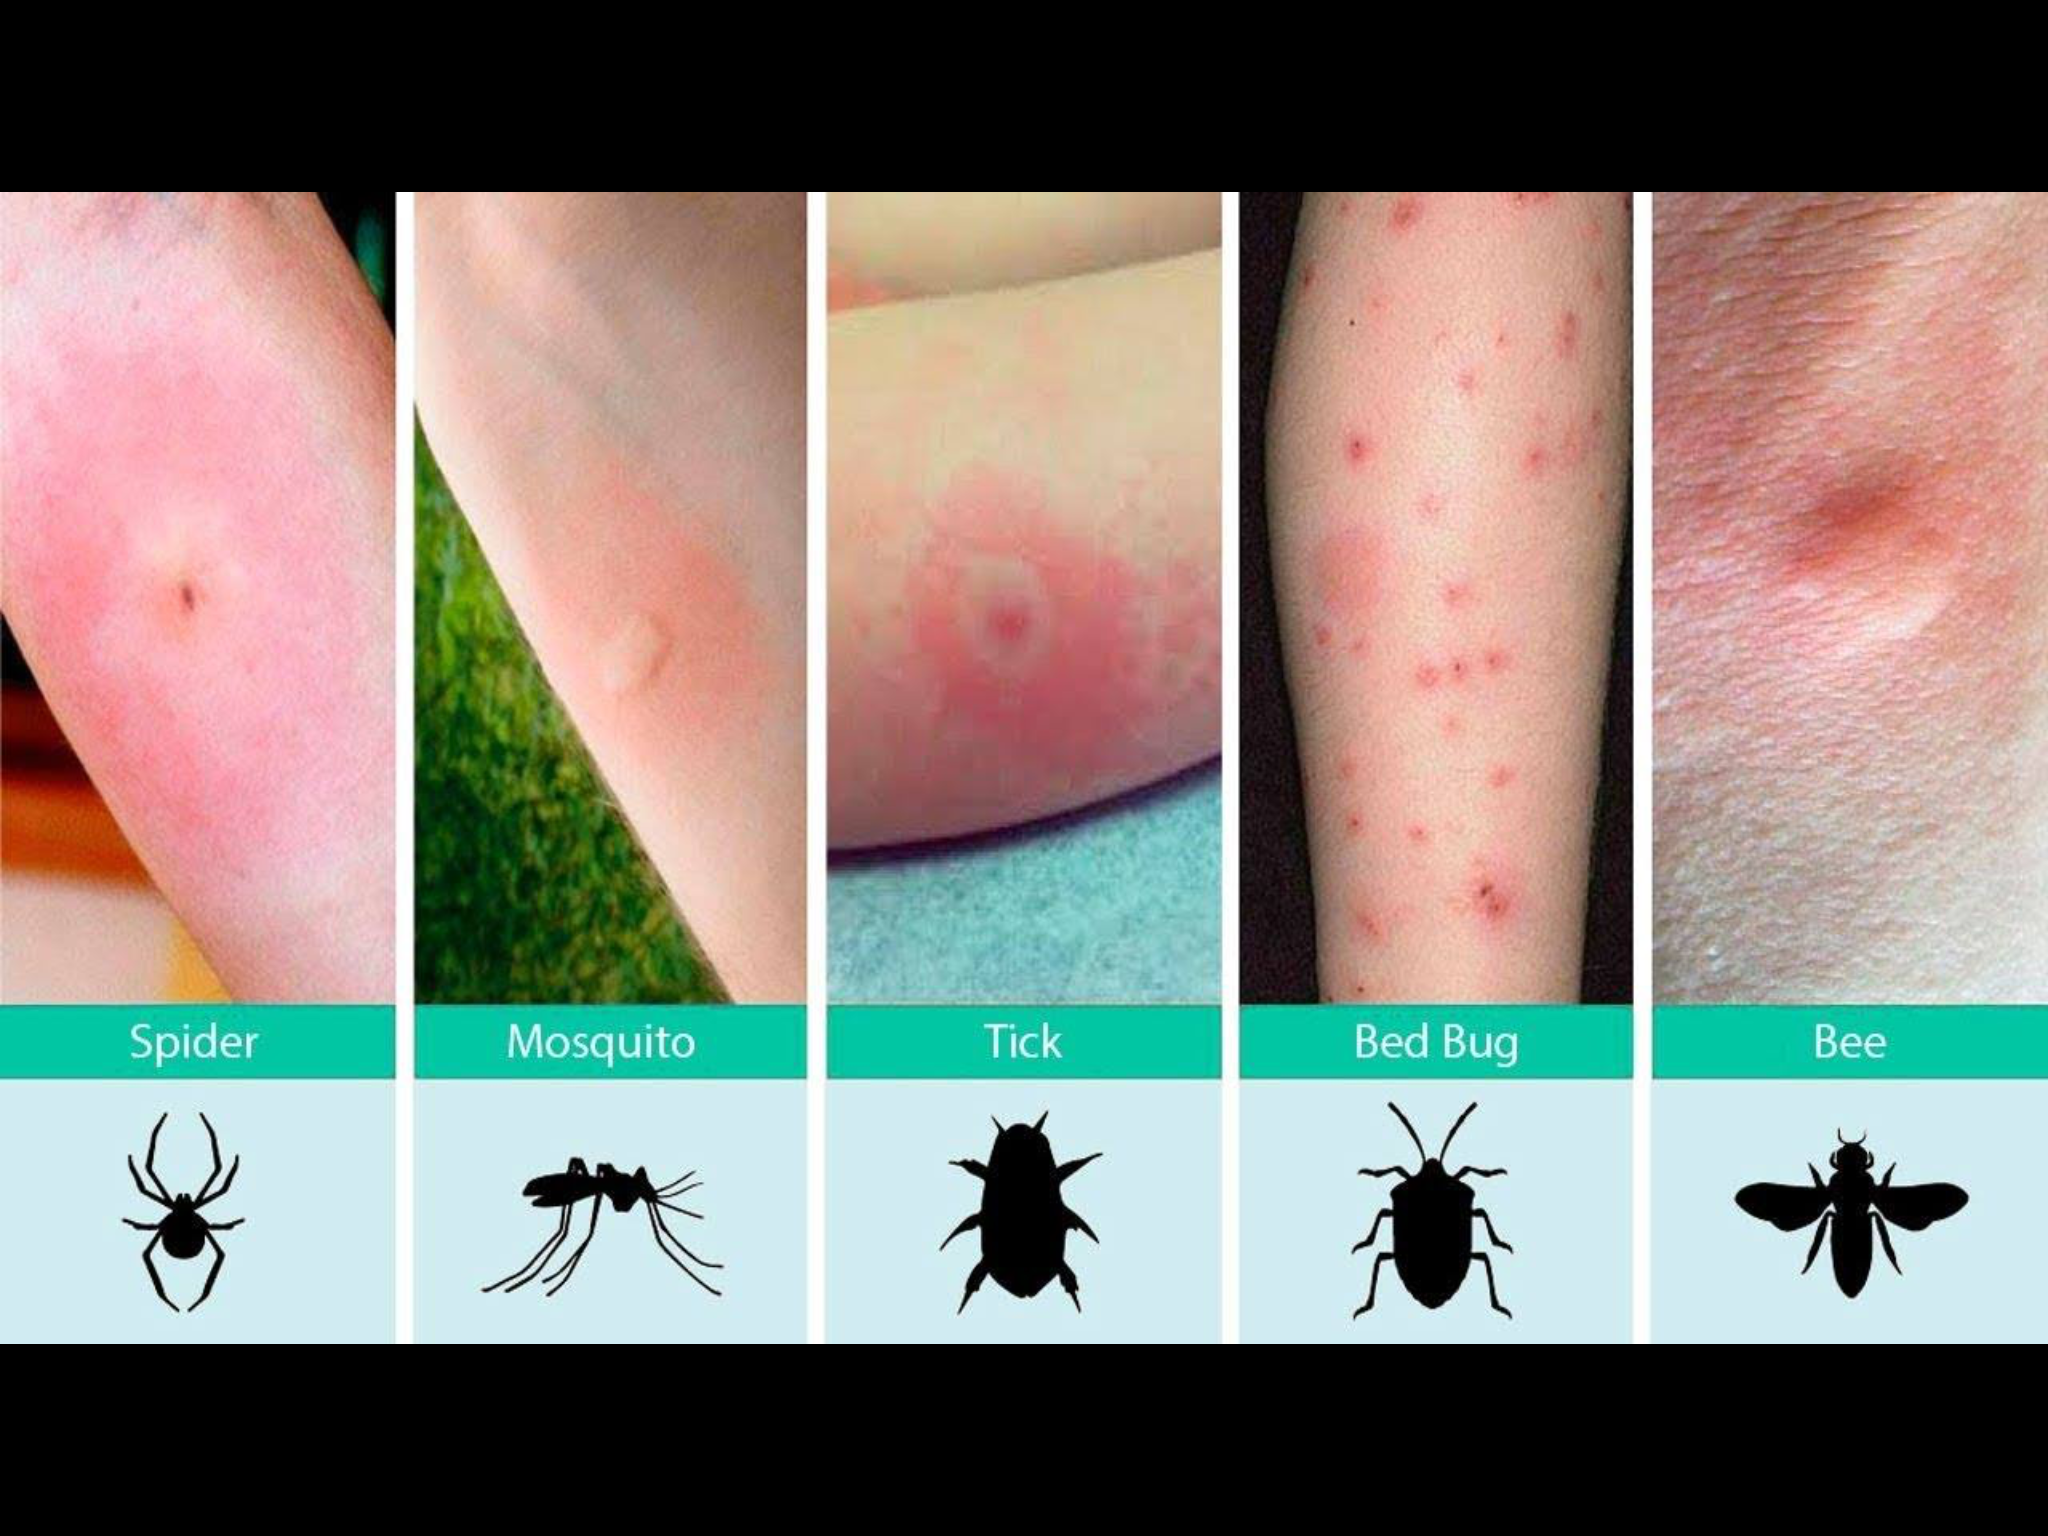 Pin by Merry Hamrick on Health/Medical Bed bug bites